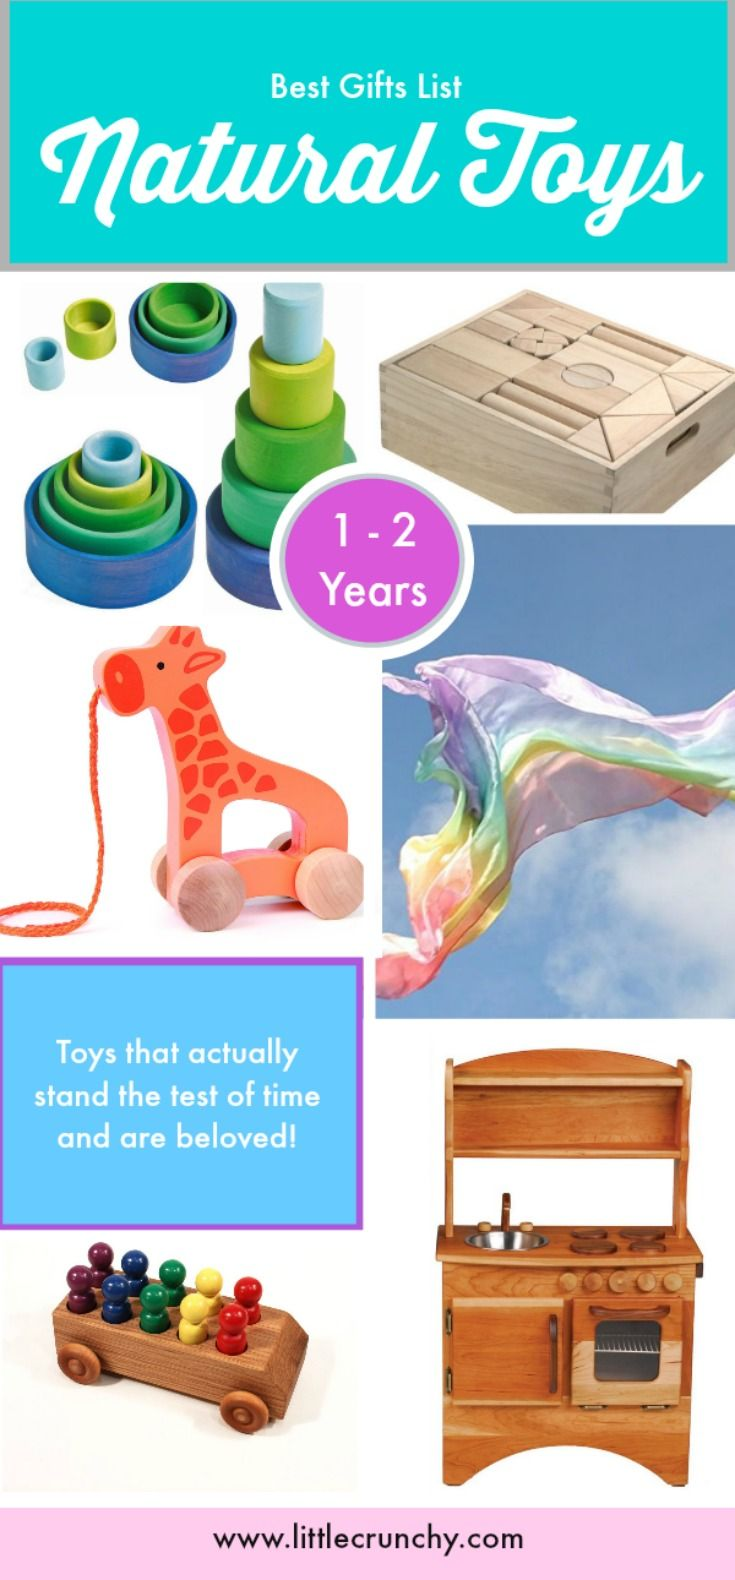 Natural Toys that make great gifts for holidays or birthdays for boys or girls ages 1 - 2 years old. Waldorf - Natural Parenting - Crunchy Parenting - Attachment Parenting - EcoFriendly Toys - Gift Ideas For Baby Toddlers.